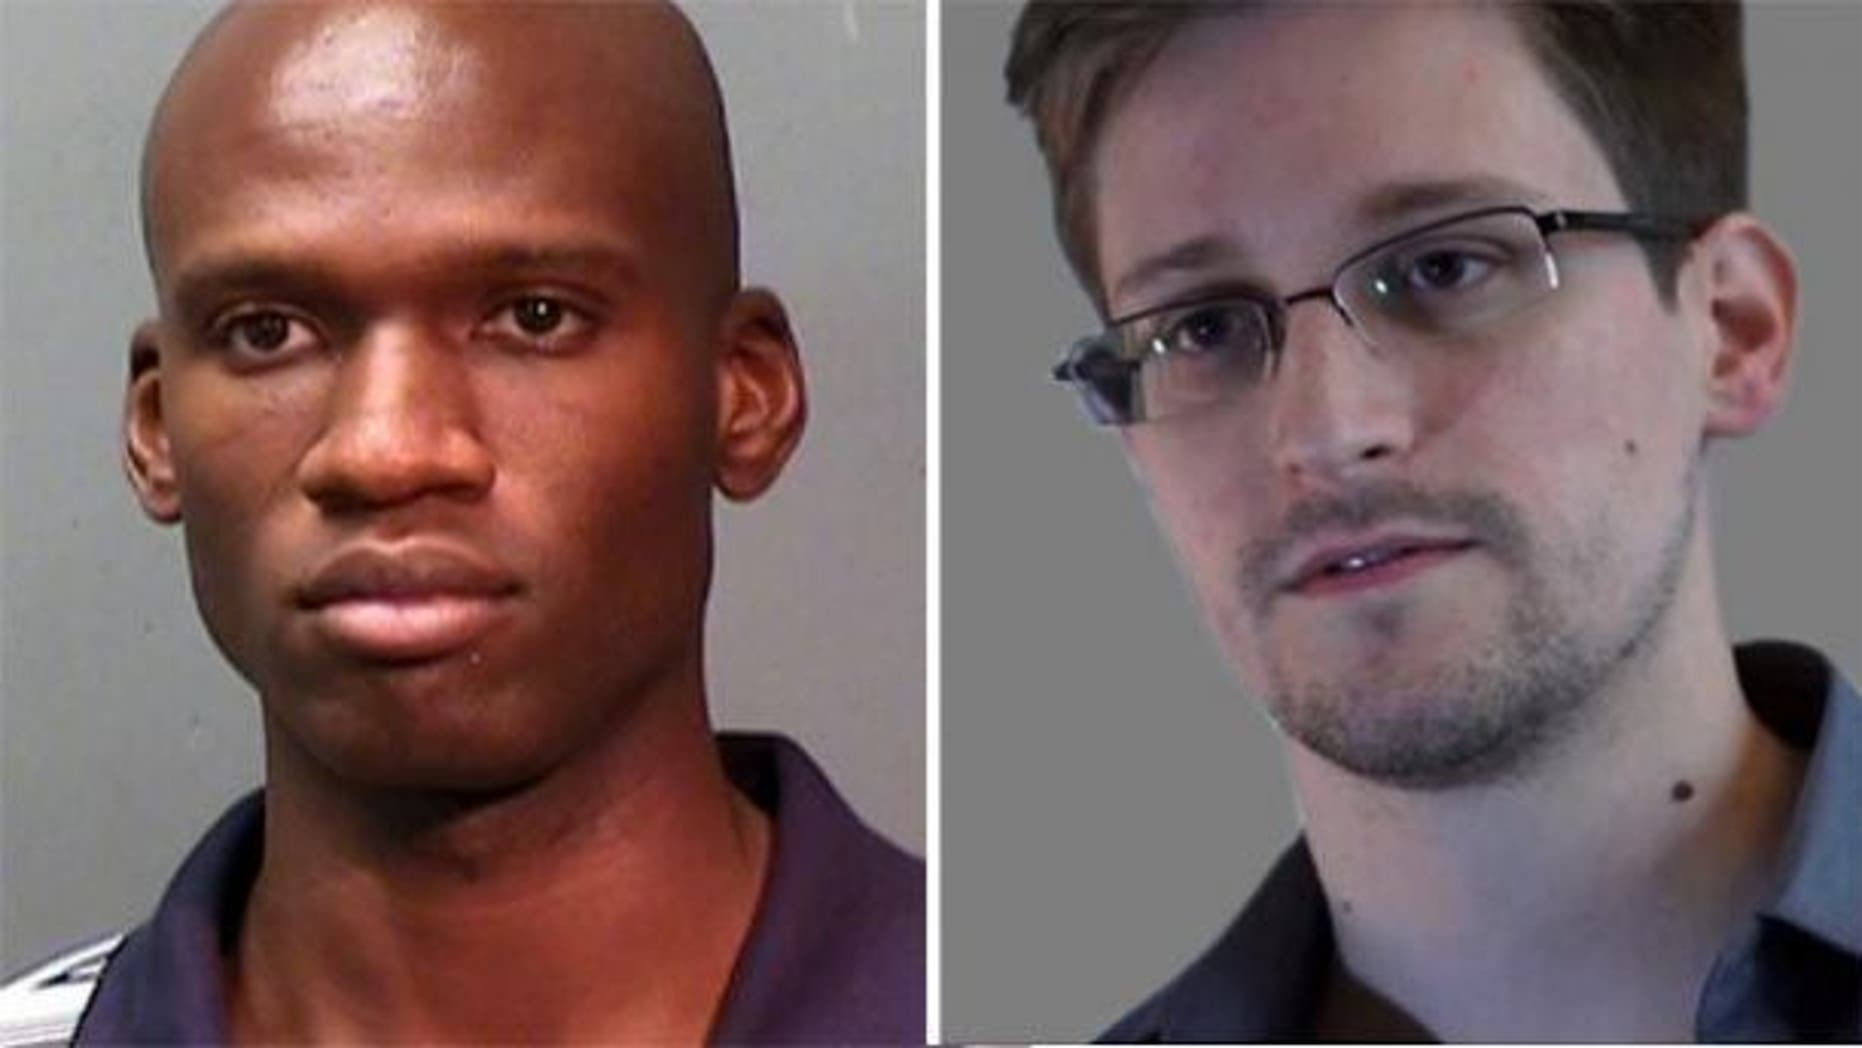 Aaron Alexis, left, and Edward Snowden underwent background checks performed by USIS